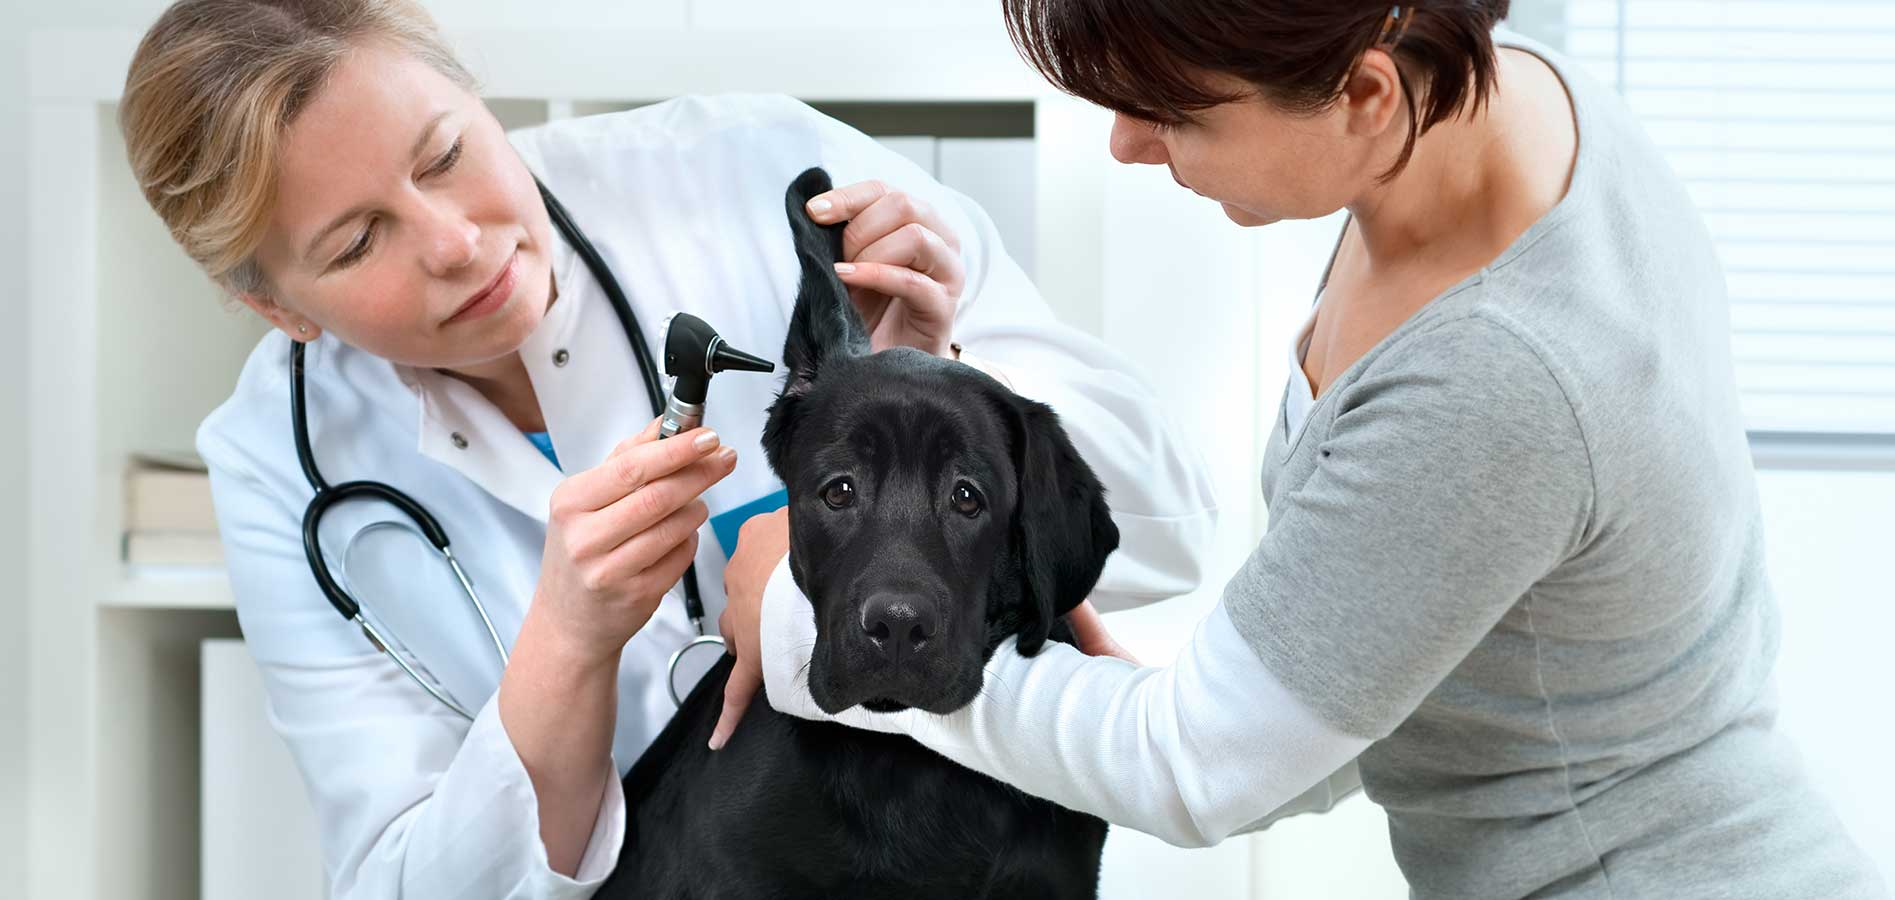 veterinarian checking dog with owner